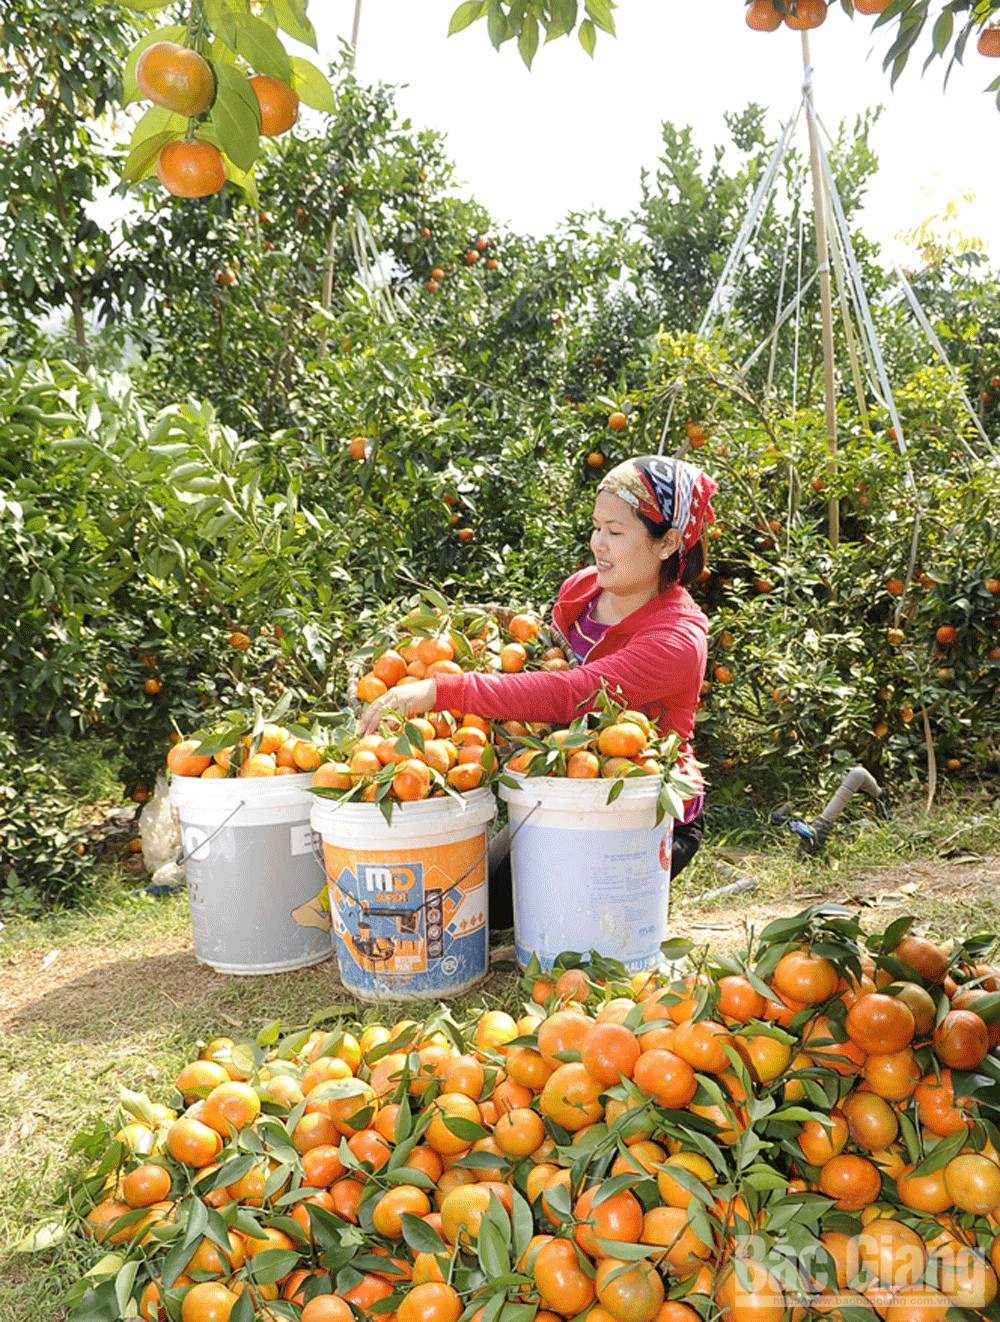 Orchards welcome visitors, Bac Giang province, Luc Ngan district, Luc Ngan fruit, signature products, fruit trees, VietGAP standard